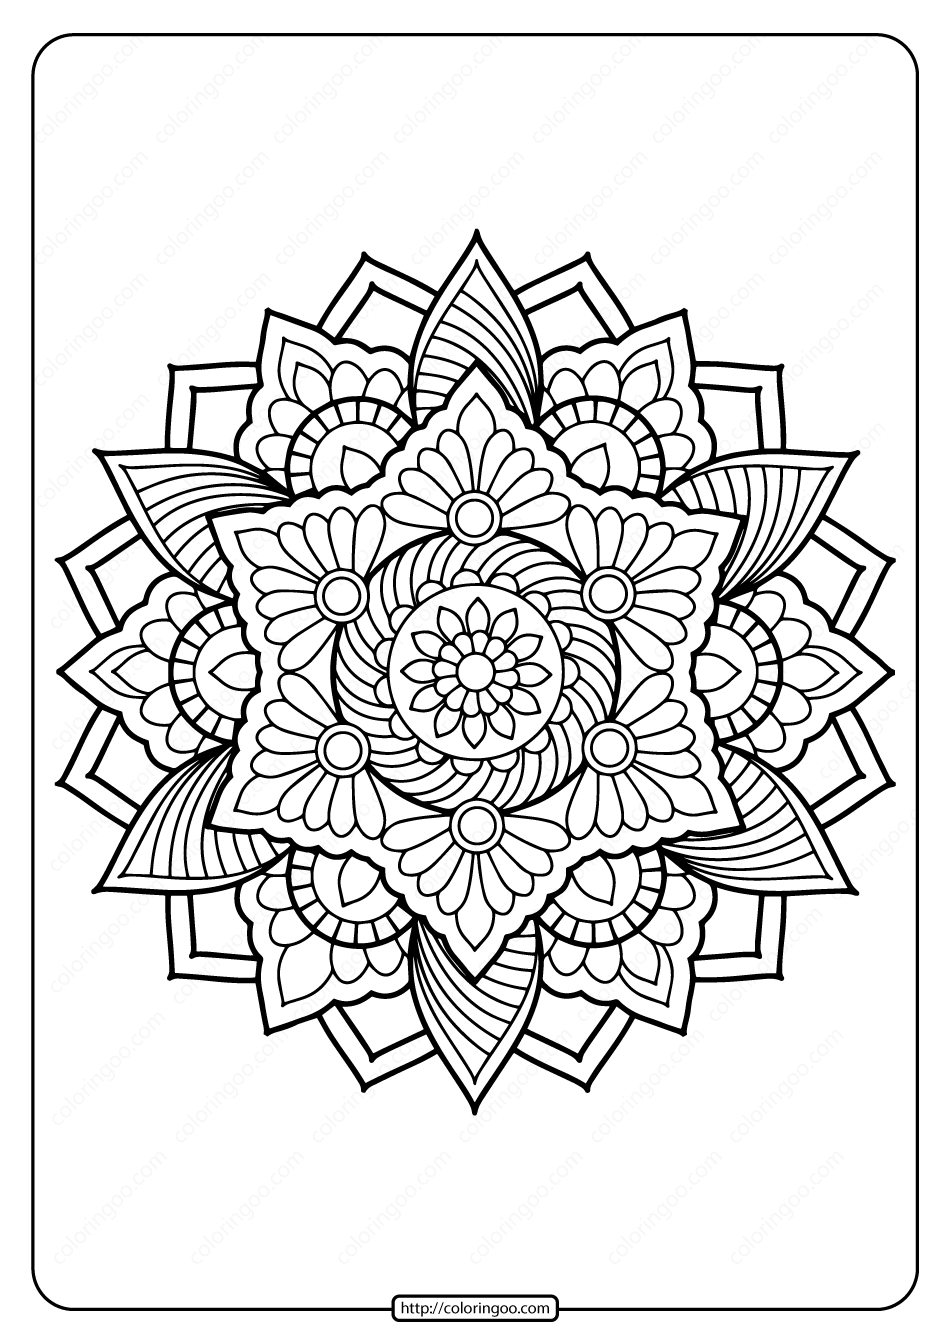 Printable Coloring Book Pages For Adults 024 In 2020 Mandala Coloring Pages Mandala Coloring Books Mandala Coloring